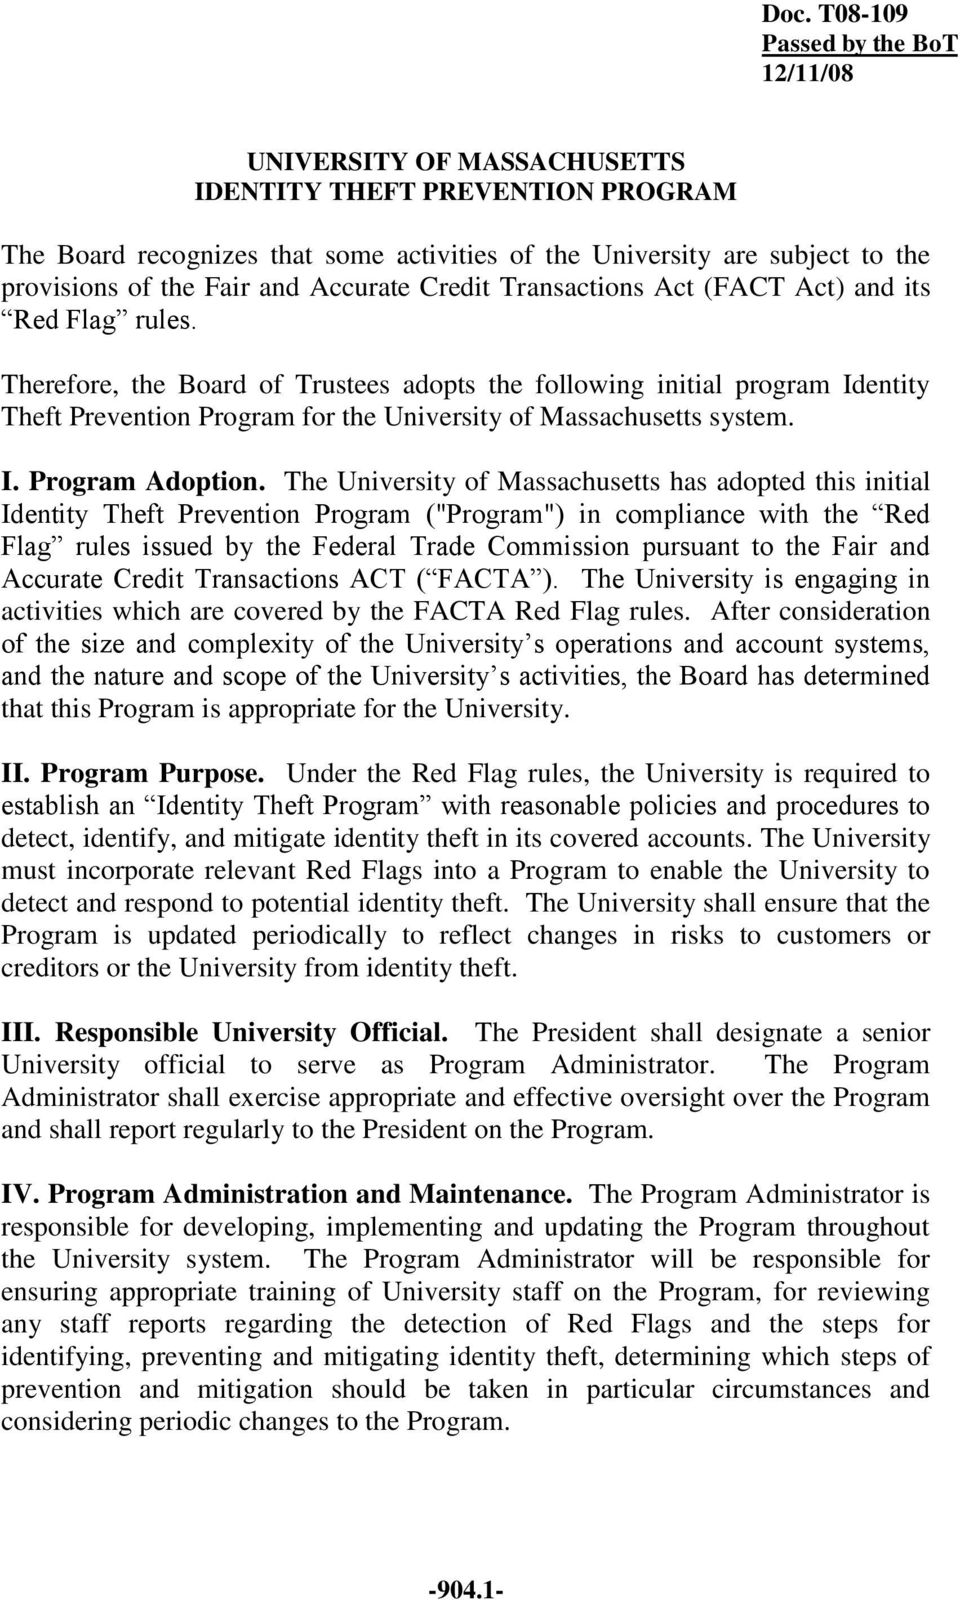 Therefore, the Board of Trustees adopts the following initial program Identity Theft Prevention Program for the University of Massachusetts system. I. Program Adoption.